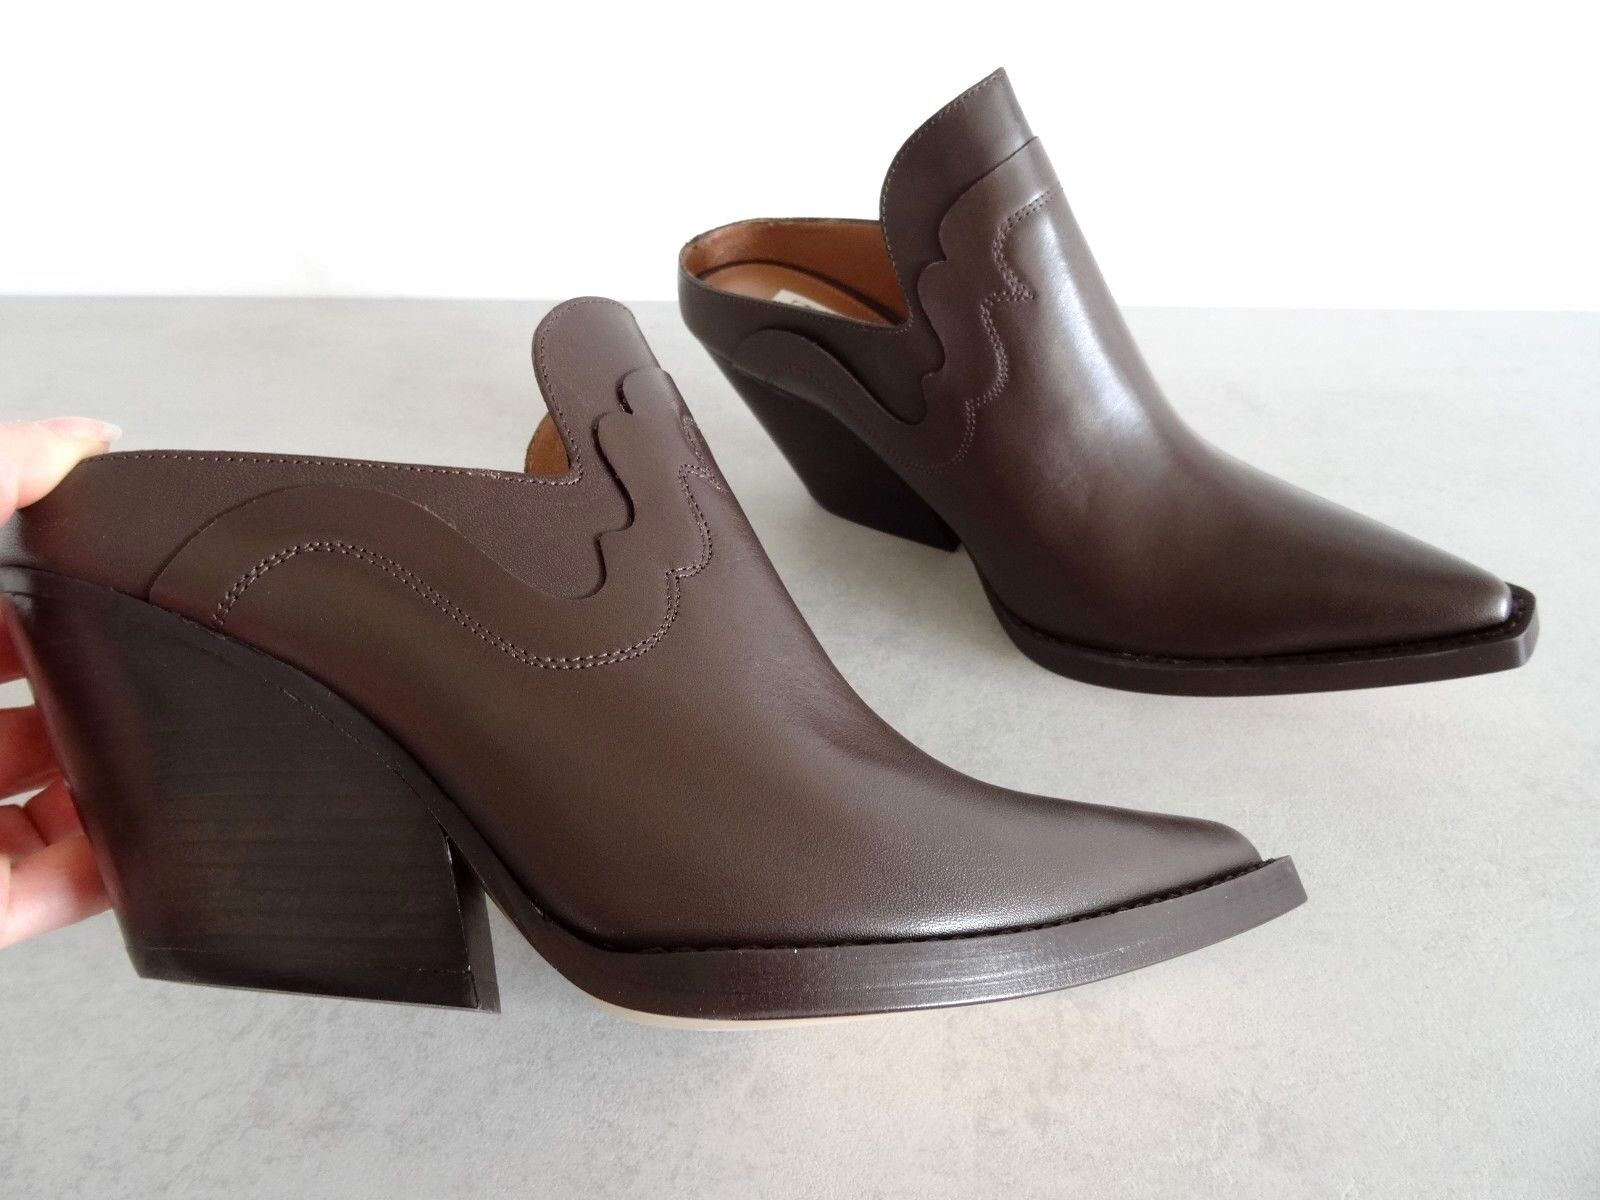 ZARA STUDIO BROWN LEATHER COWBOY-STYLE MULE MULE COWBOY-STYLE ANKLE BOOTS SIZE USA 7,5 0305df